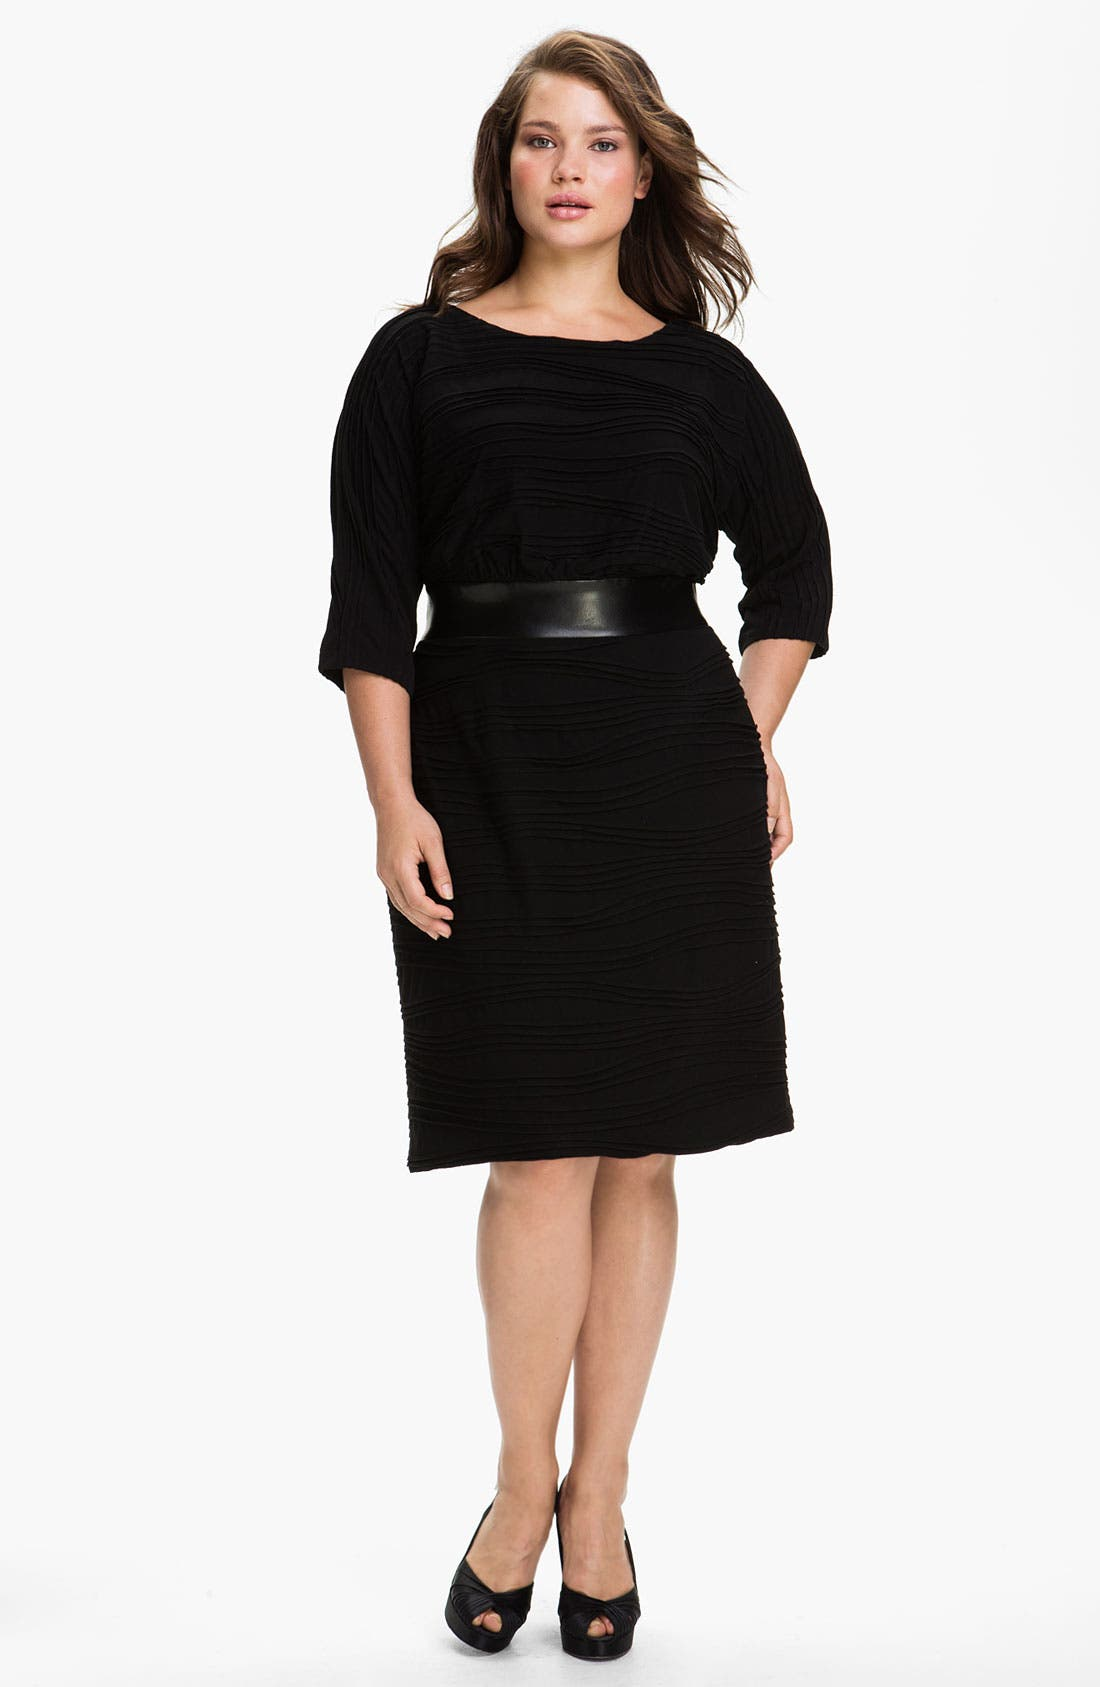 Main Image - Adrianna Papell Faux Leather Trim Jersey Sheath Dress (Plus)